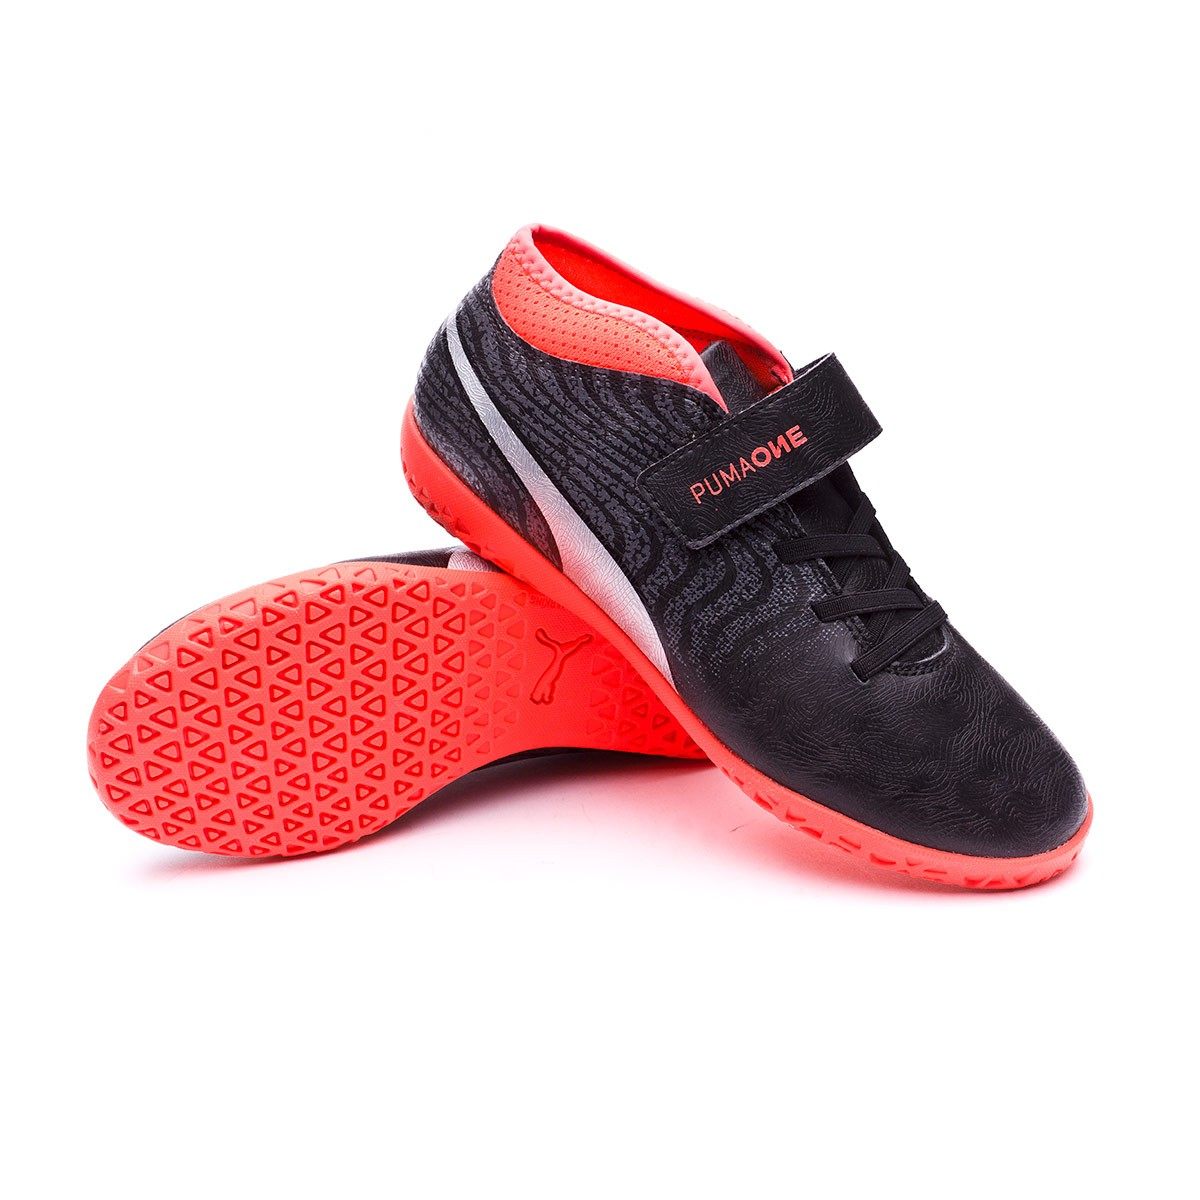 2a8930c505f81 Zapatilla Puma One 18.4 IT V Niño Puma Black-Puma Silver-Red Blast - Tienda  de fútbol Fútbol Emotion